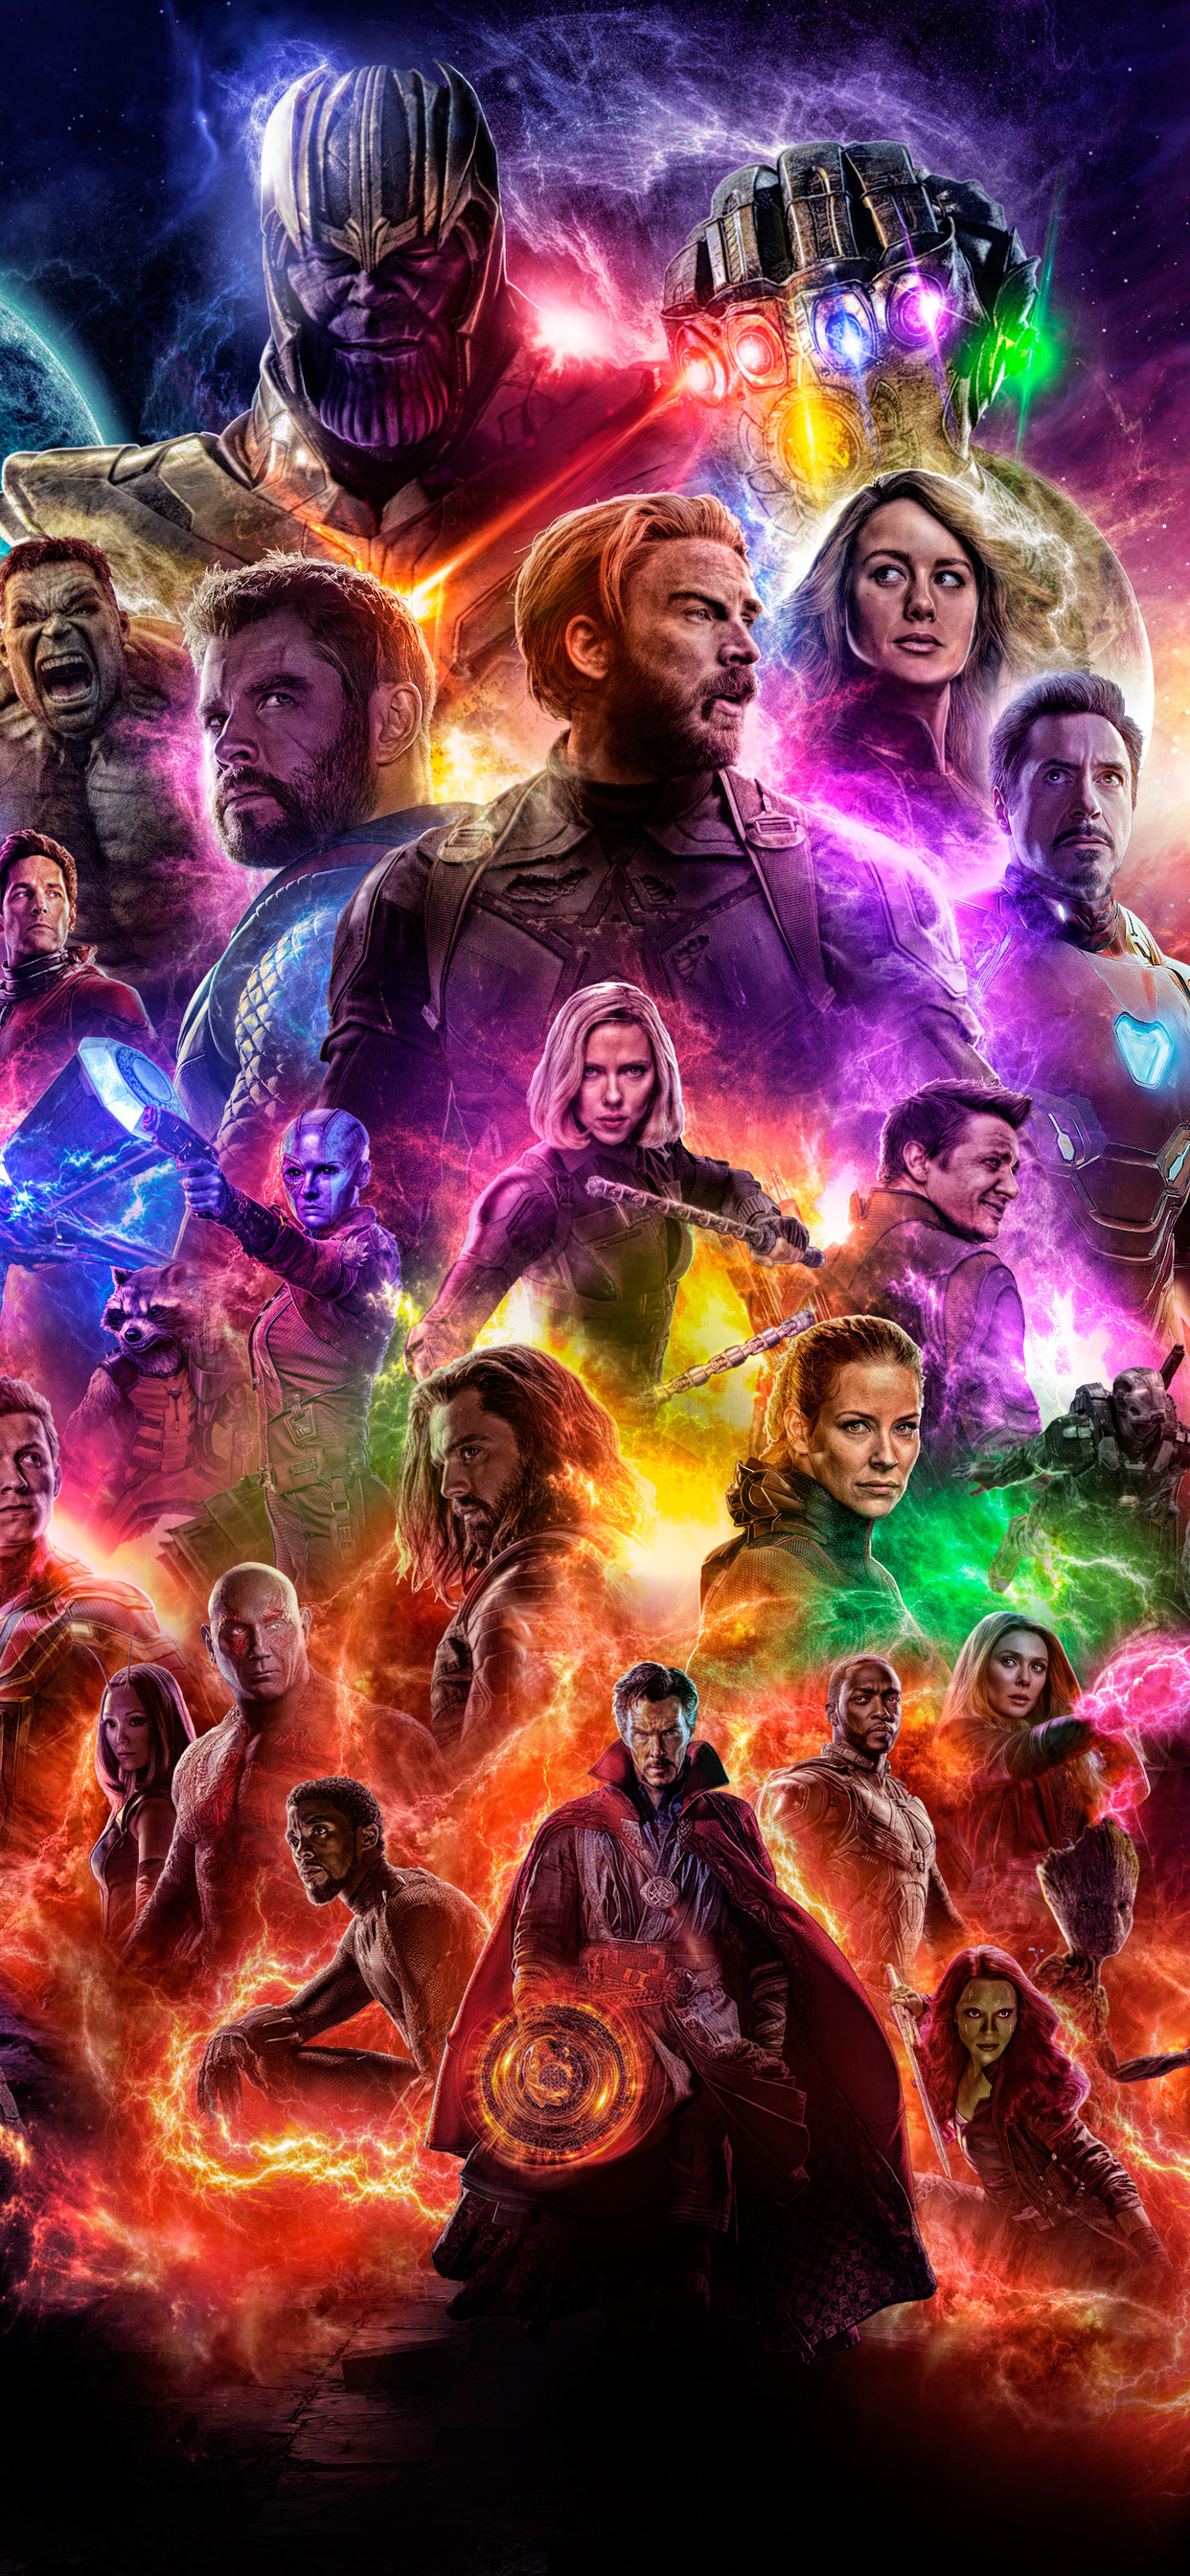 1242x2688 Avengers 4 End Game 2019 Iphone Xs Max Hd 4k Wallpapers